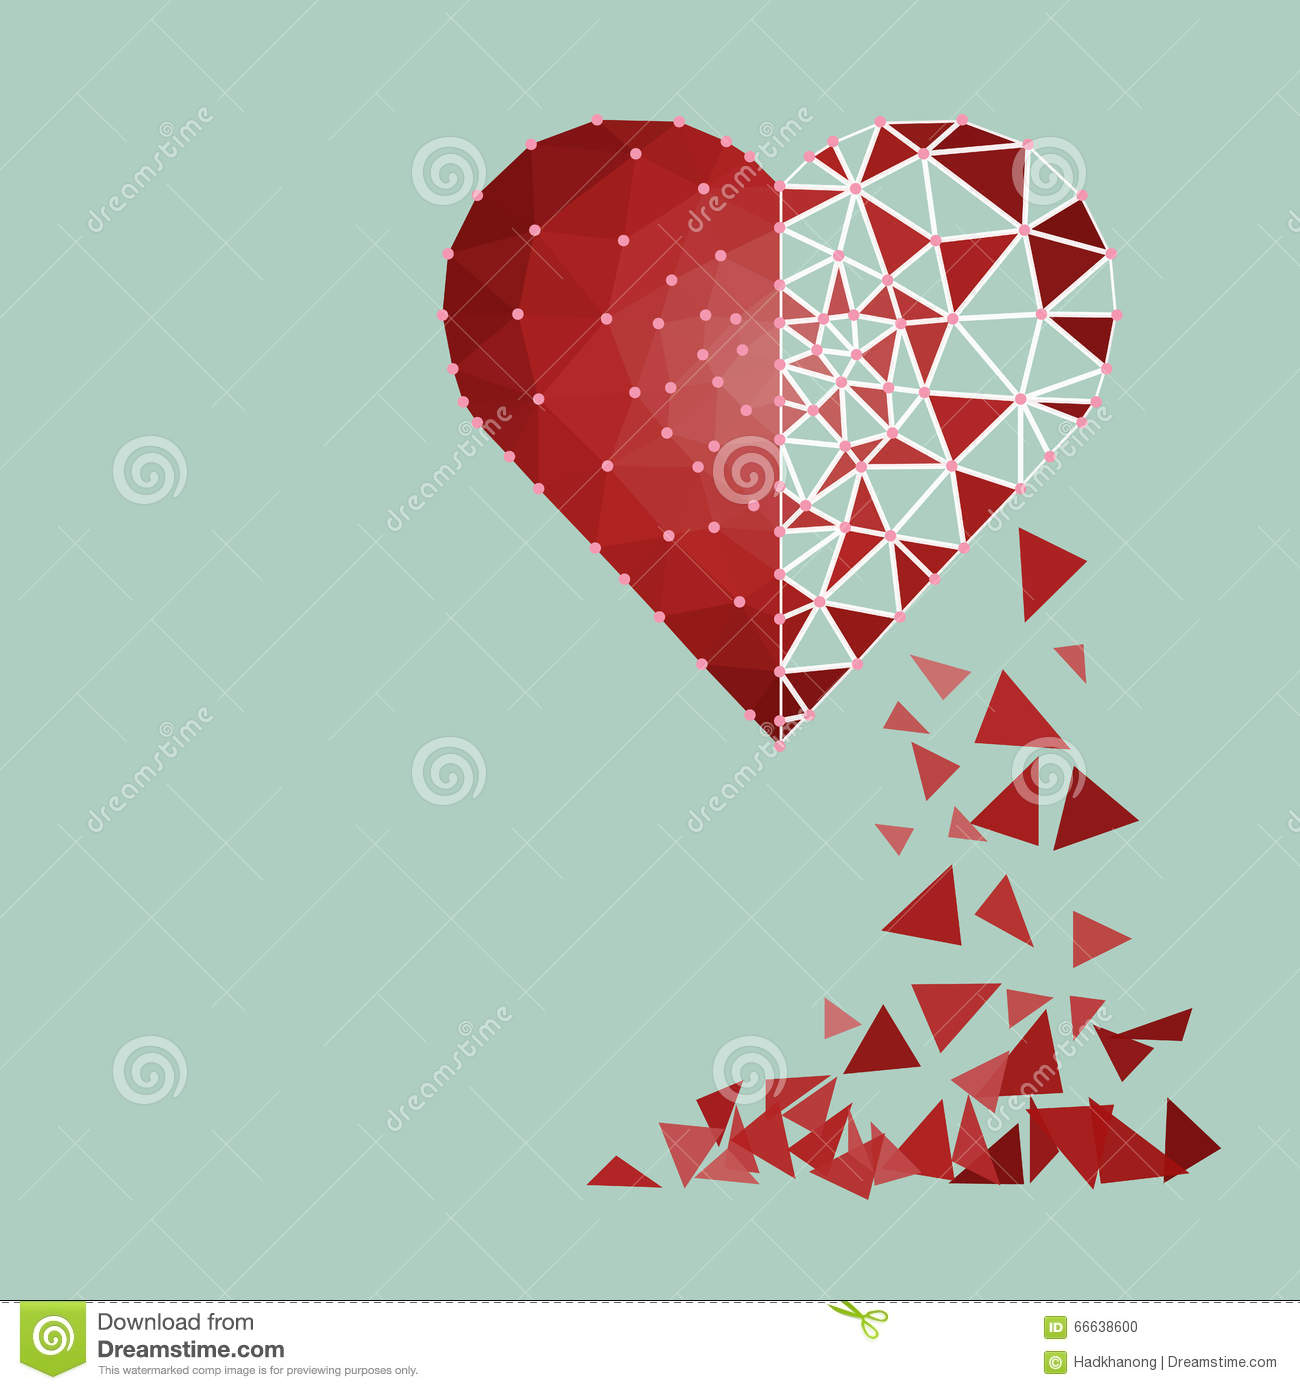 Etonnant Low Polygonal Of Red Heart That Crushed To A Pieces In A Half Fa Stock Photo